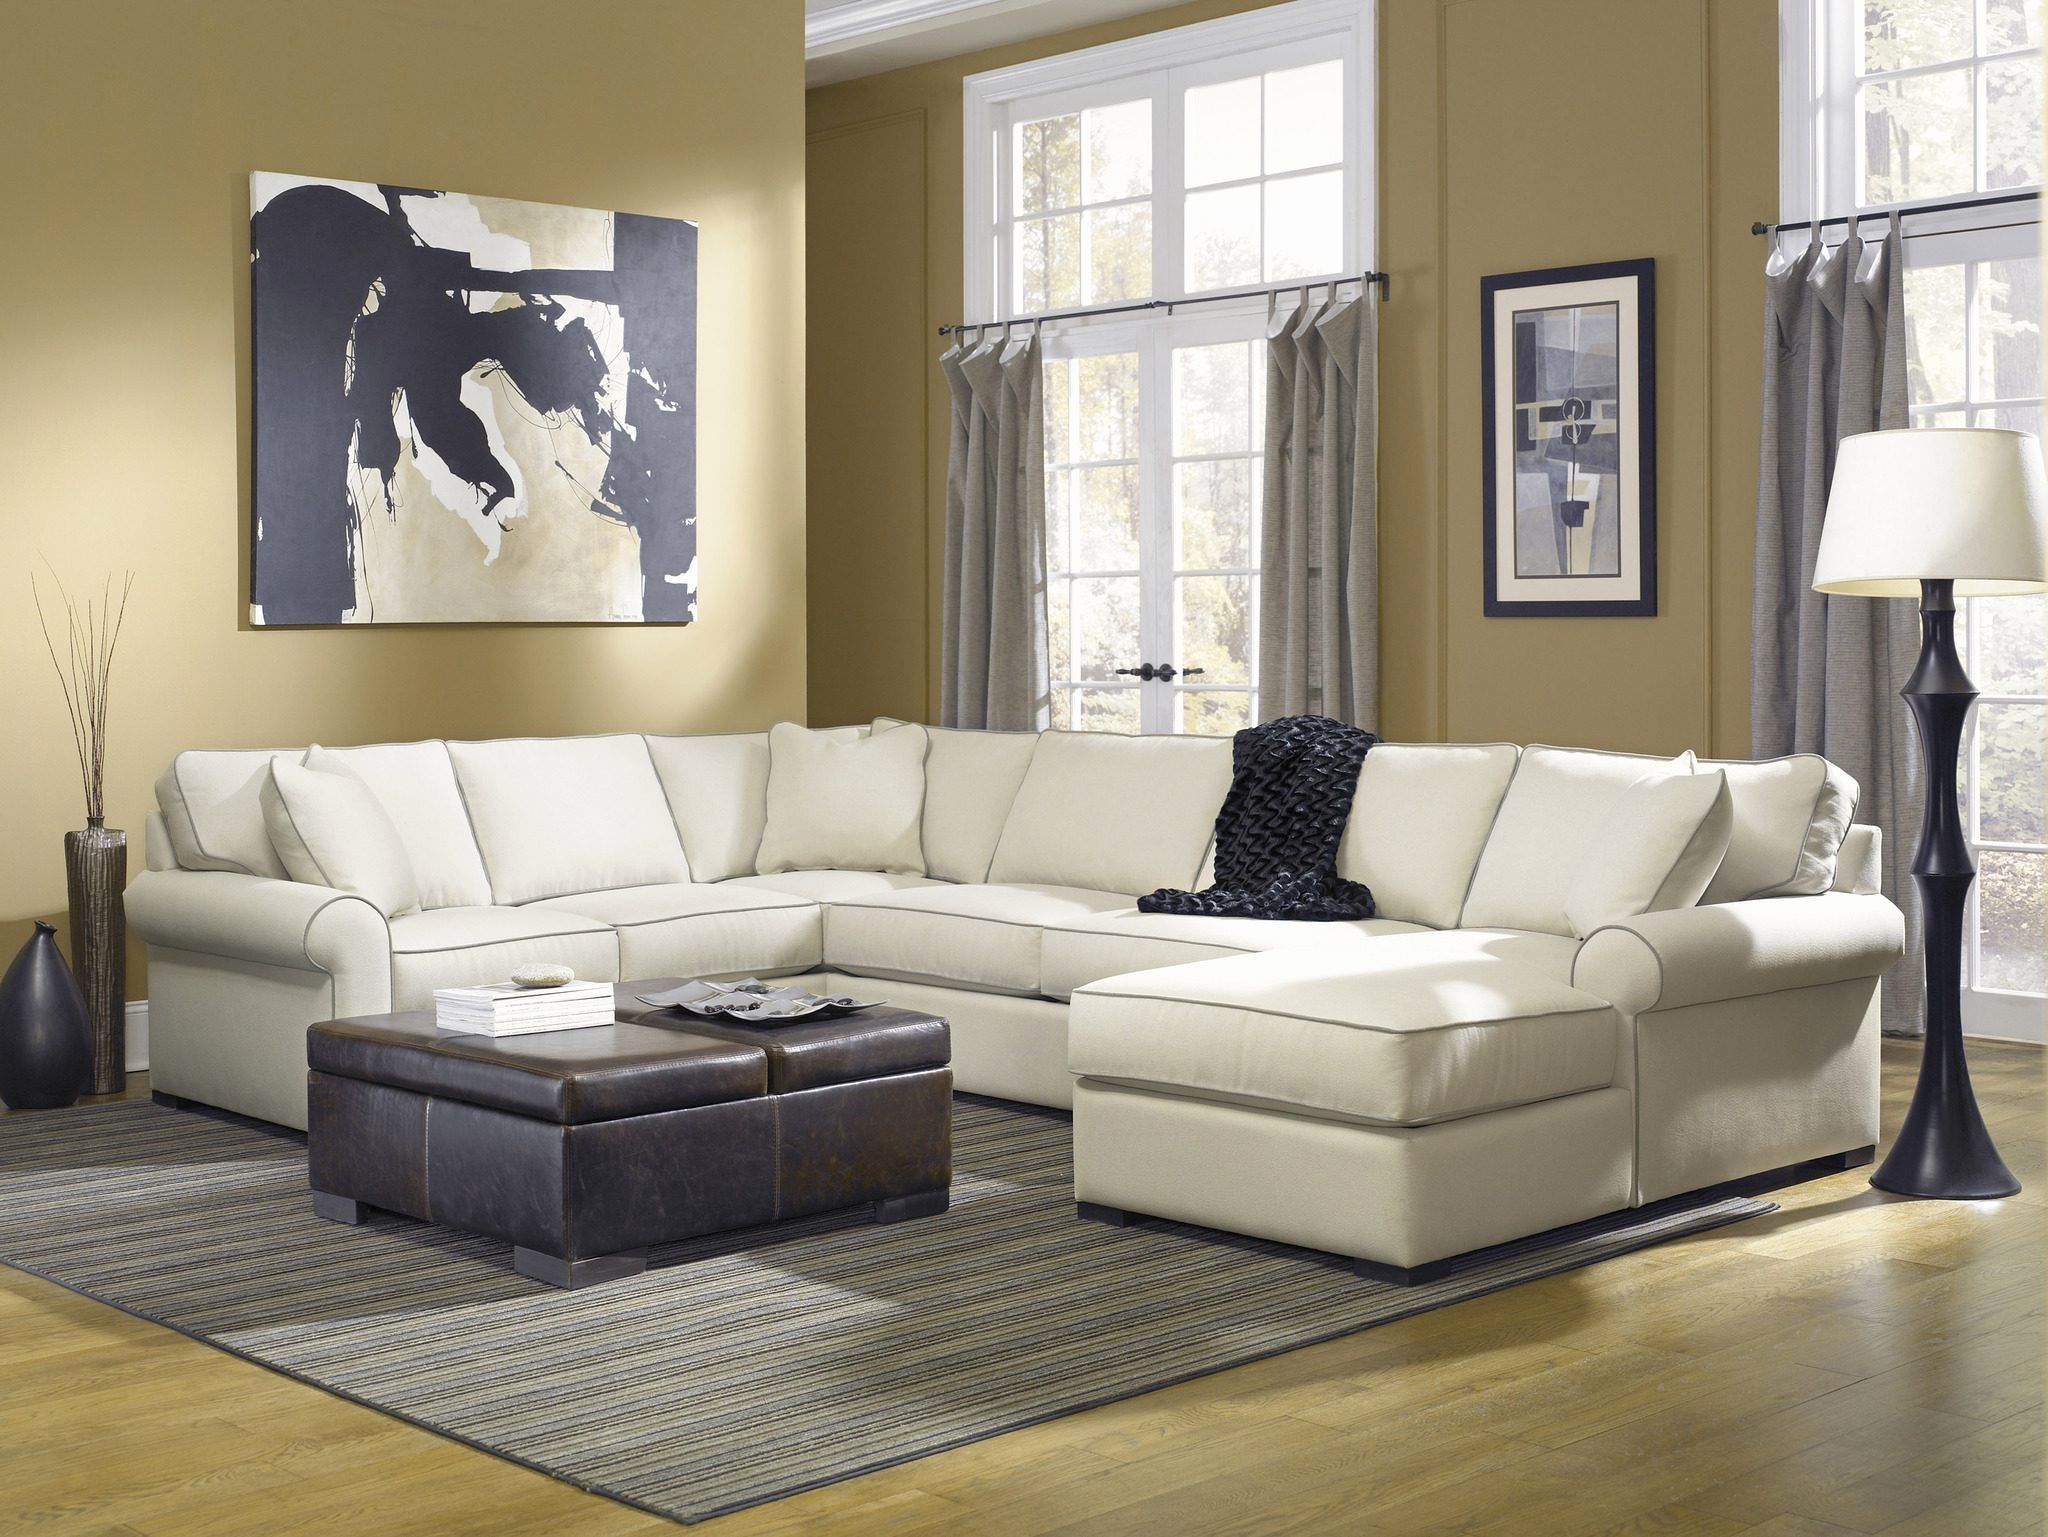 Best Of Down Filled Sectional Sofa Pictures Down Filled Sectional Sofa Best  Of Furniture Robert Michael